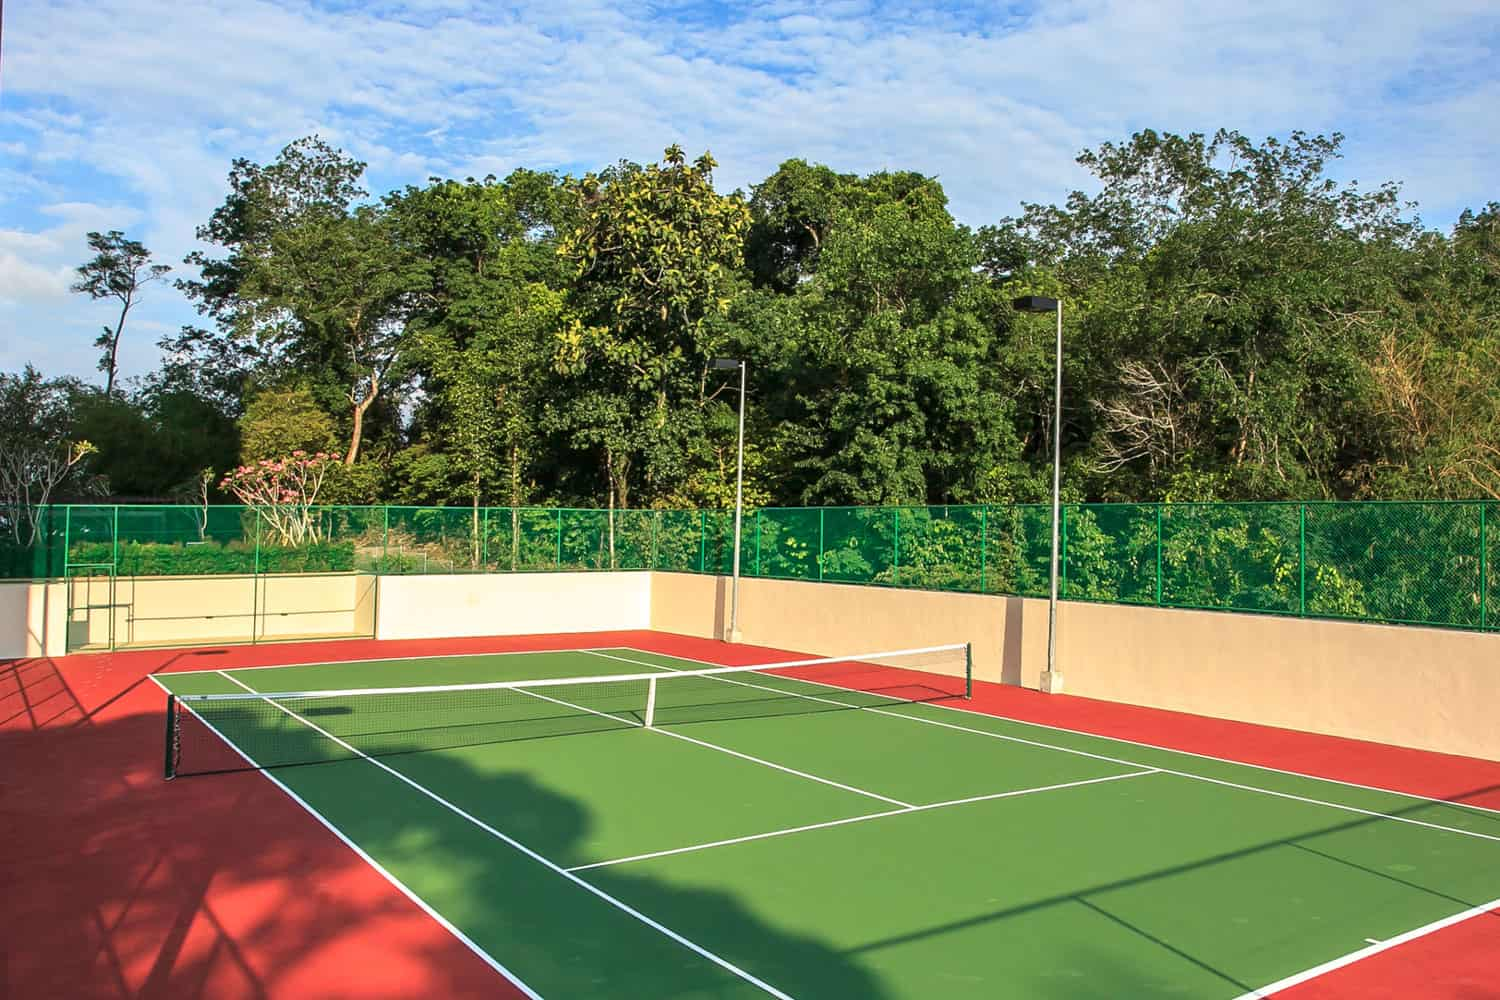 Outdoor Tennis court surrounded with trees